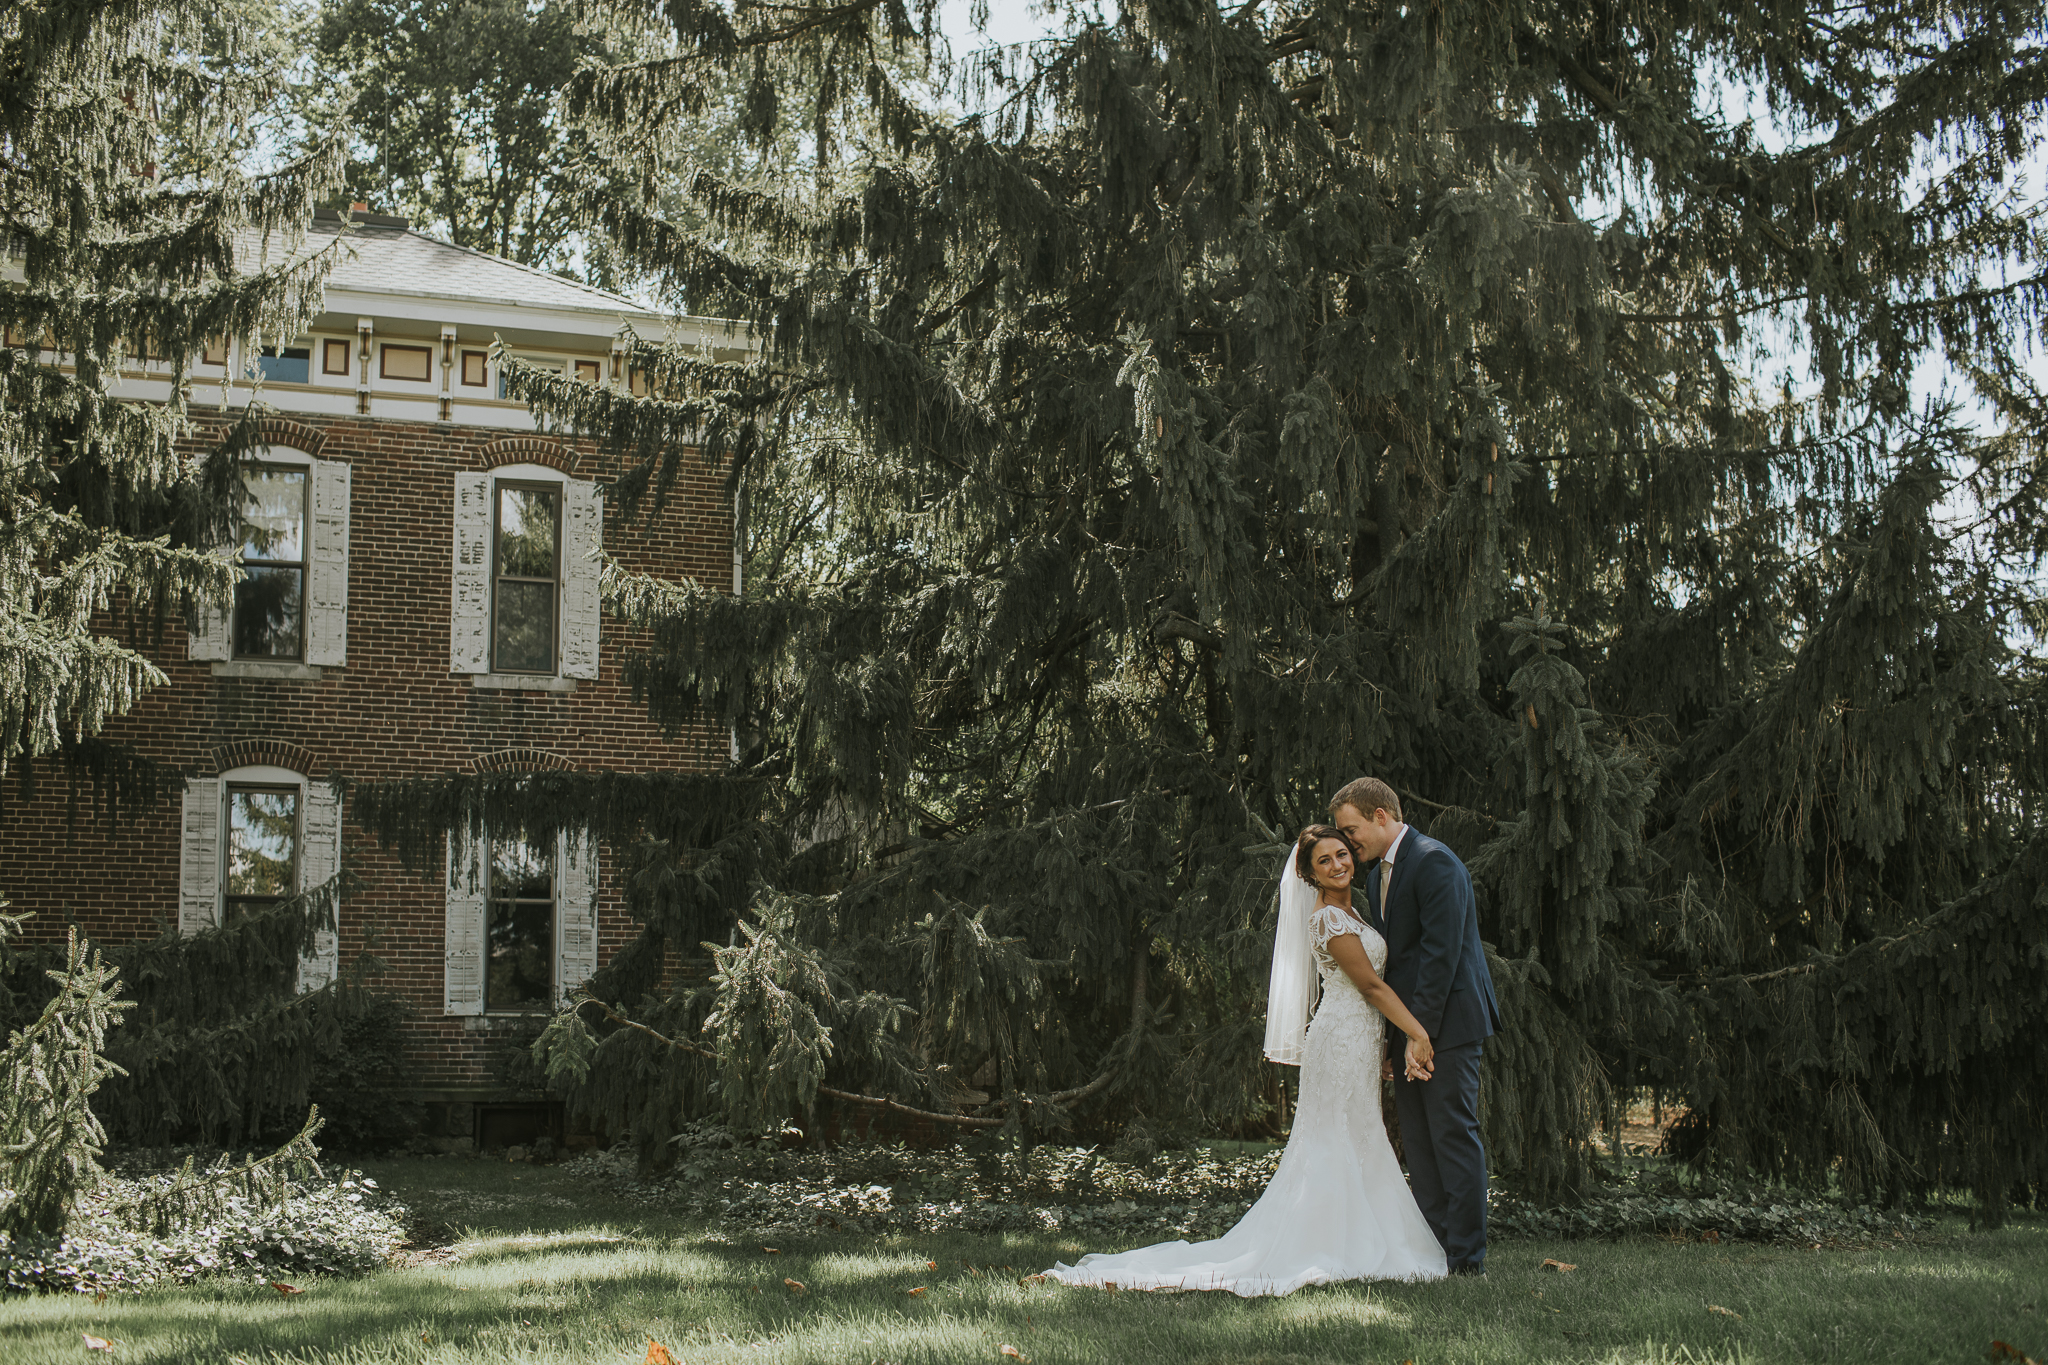 bride and groom in front of house with large pine tree